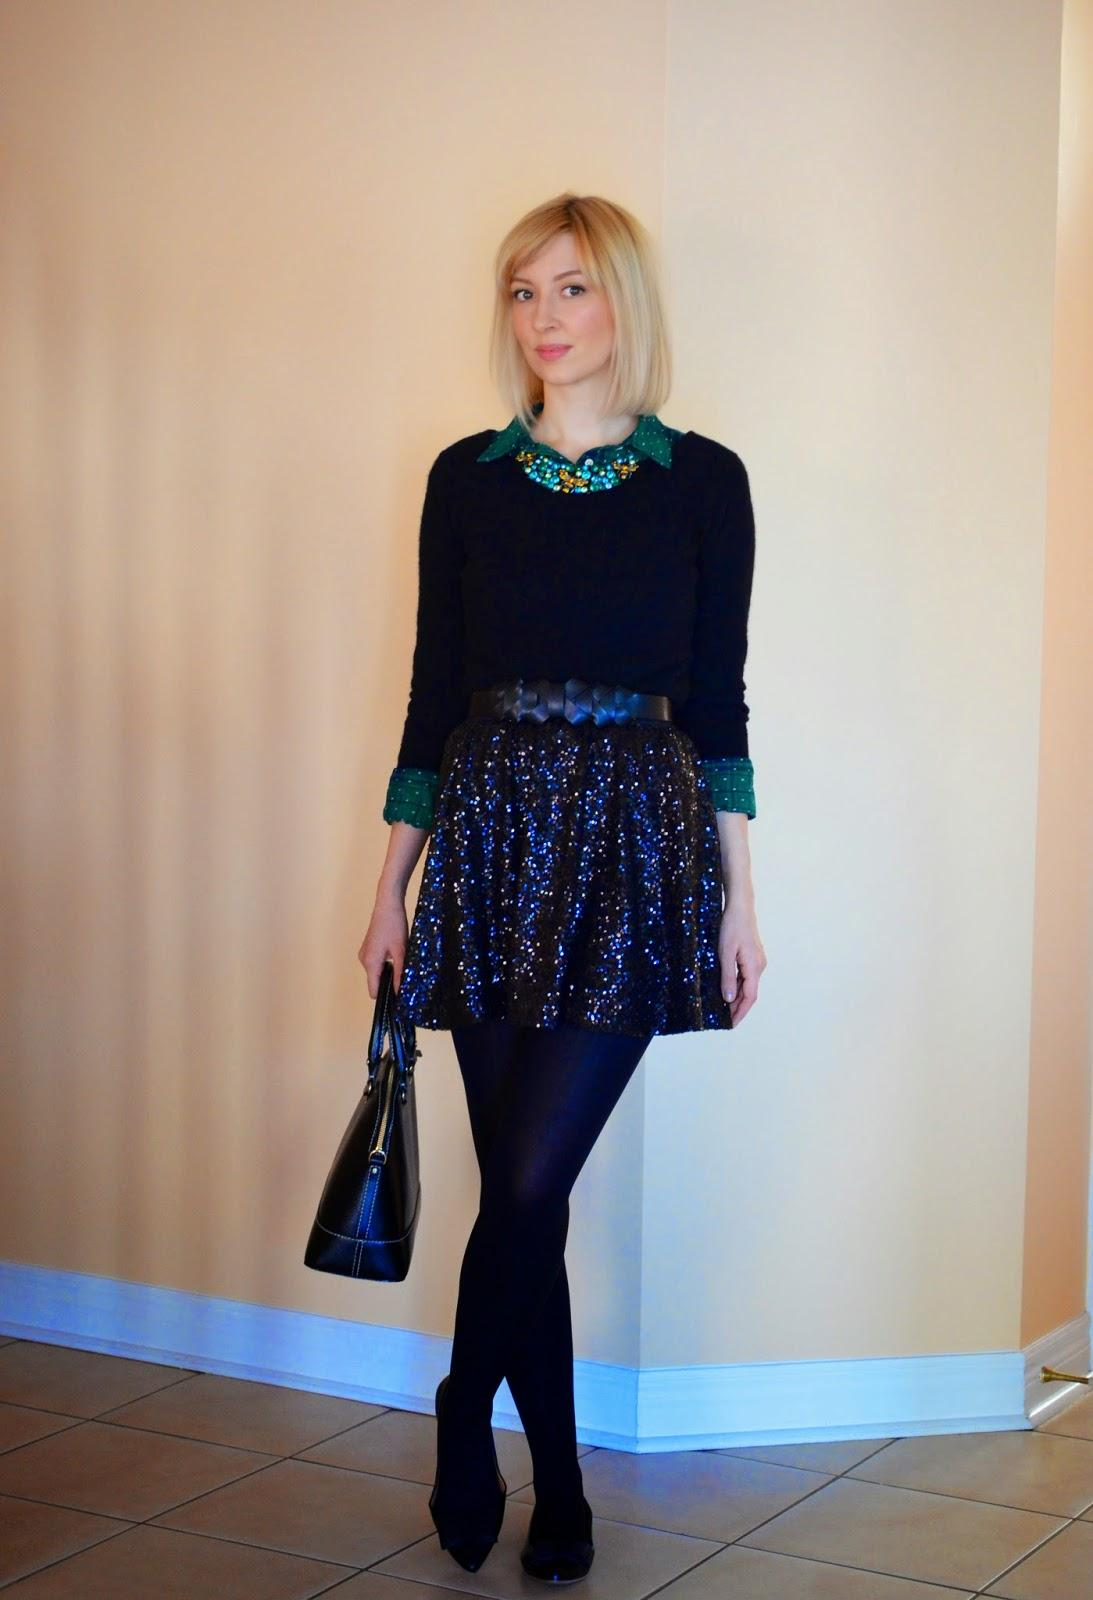 Style, OOTD, skirt style, sequin, smart casual, Target, Asos, J. Crew factory, J. Crew style, Kate Spade, green and black, preppy, preppy style,